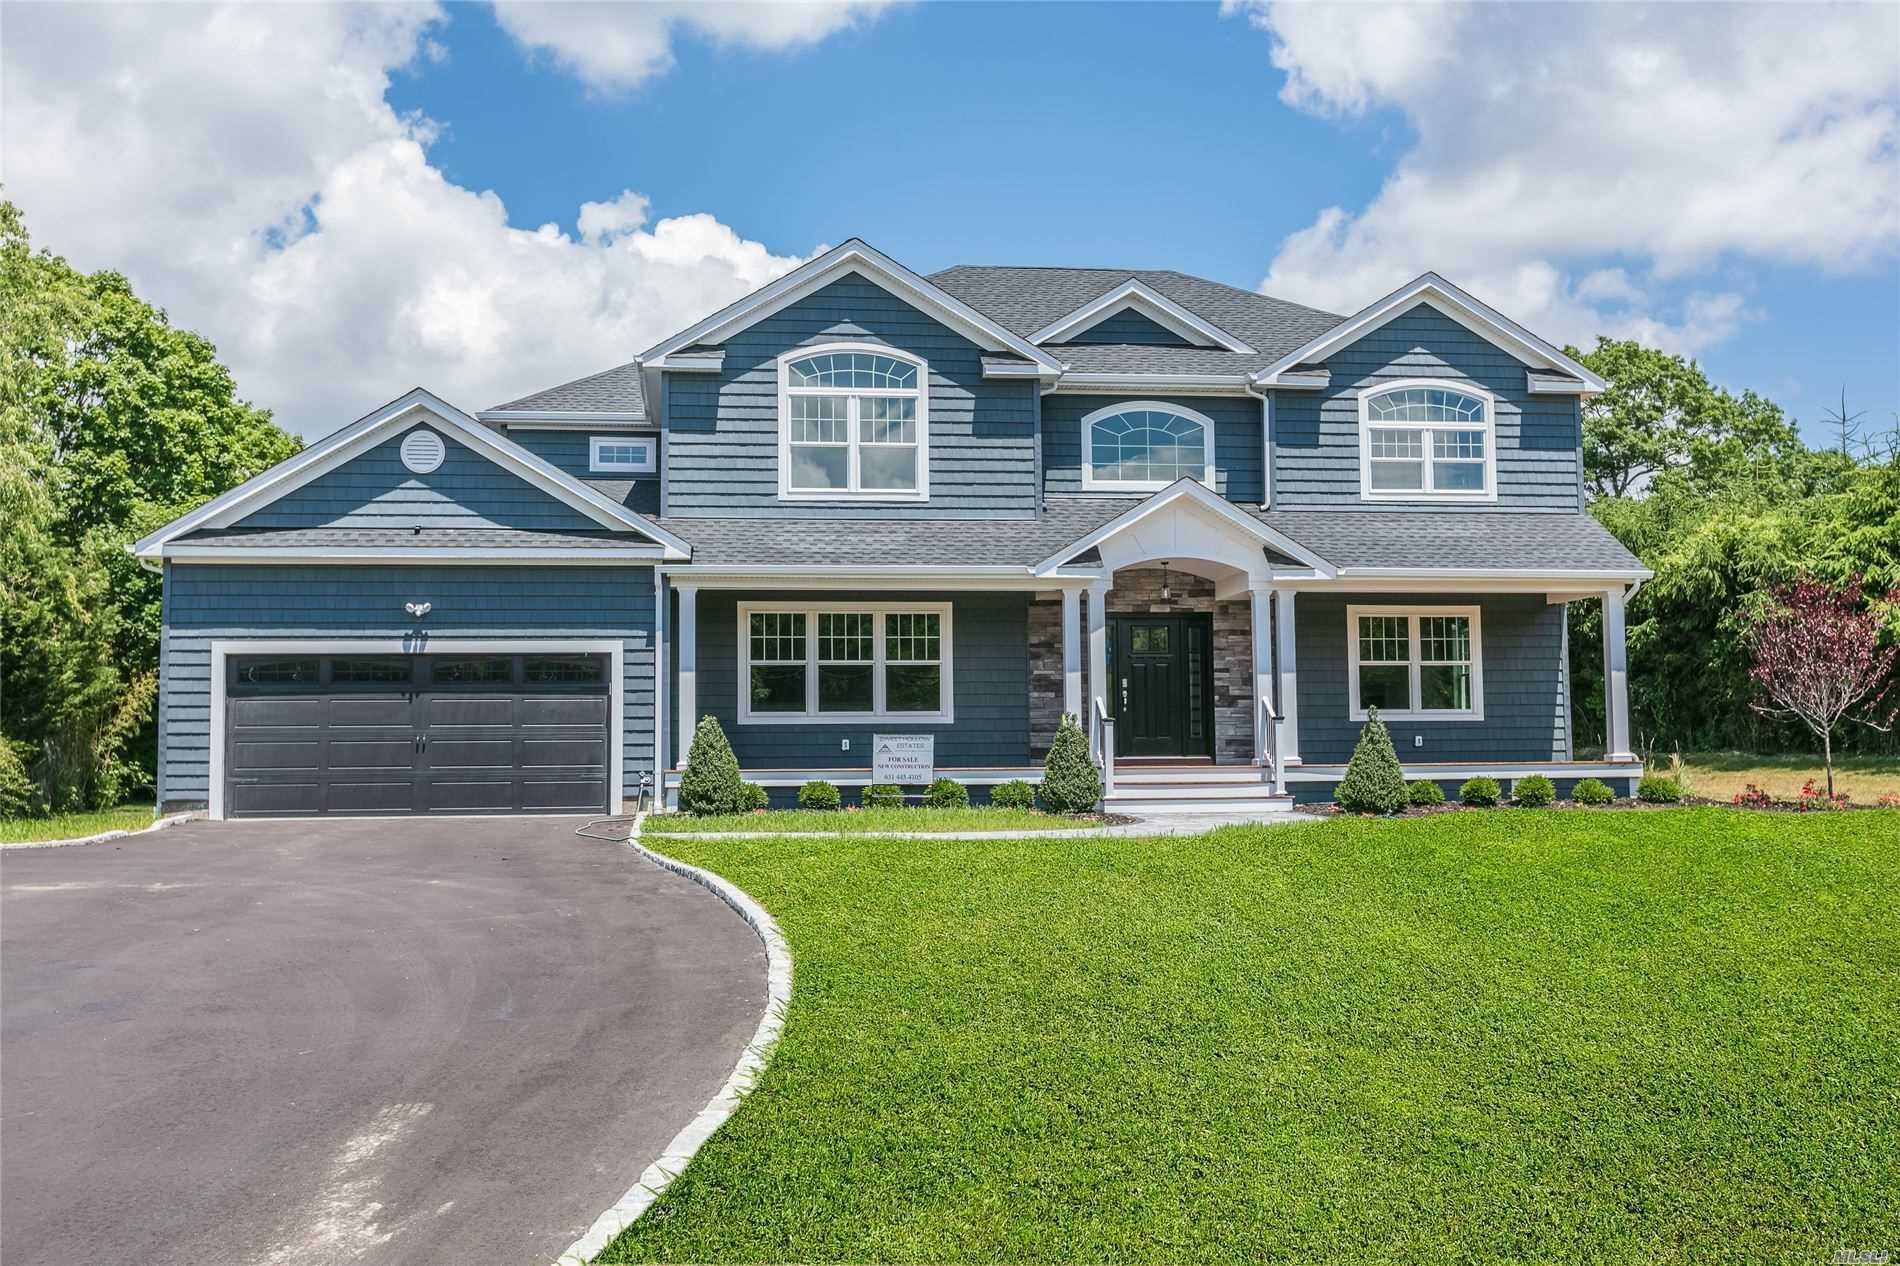 172 Old South Path, Melville, NY 11747 - MLS#: 3219451